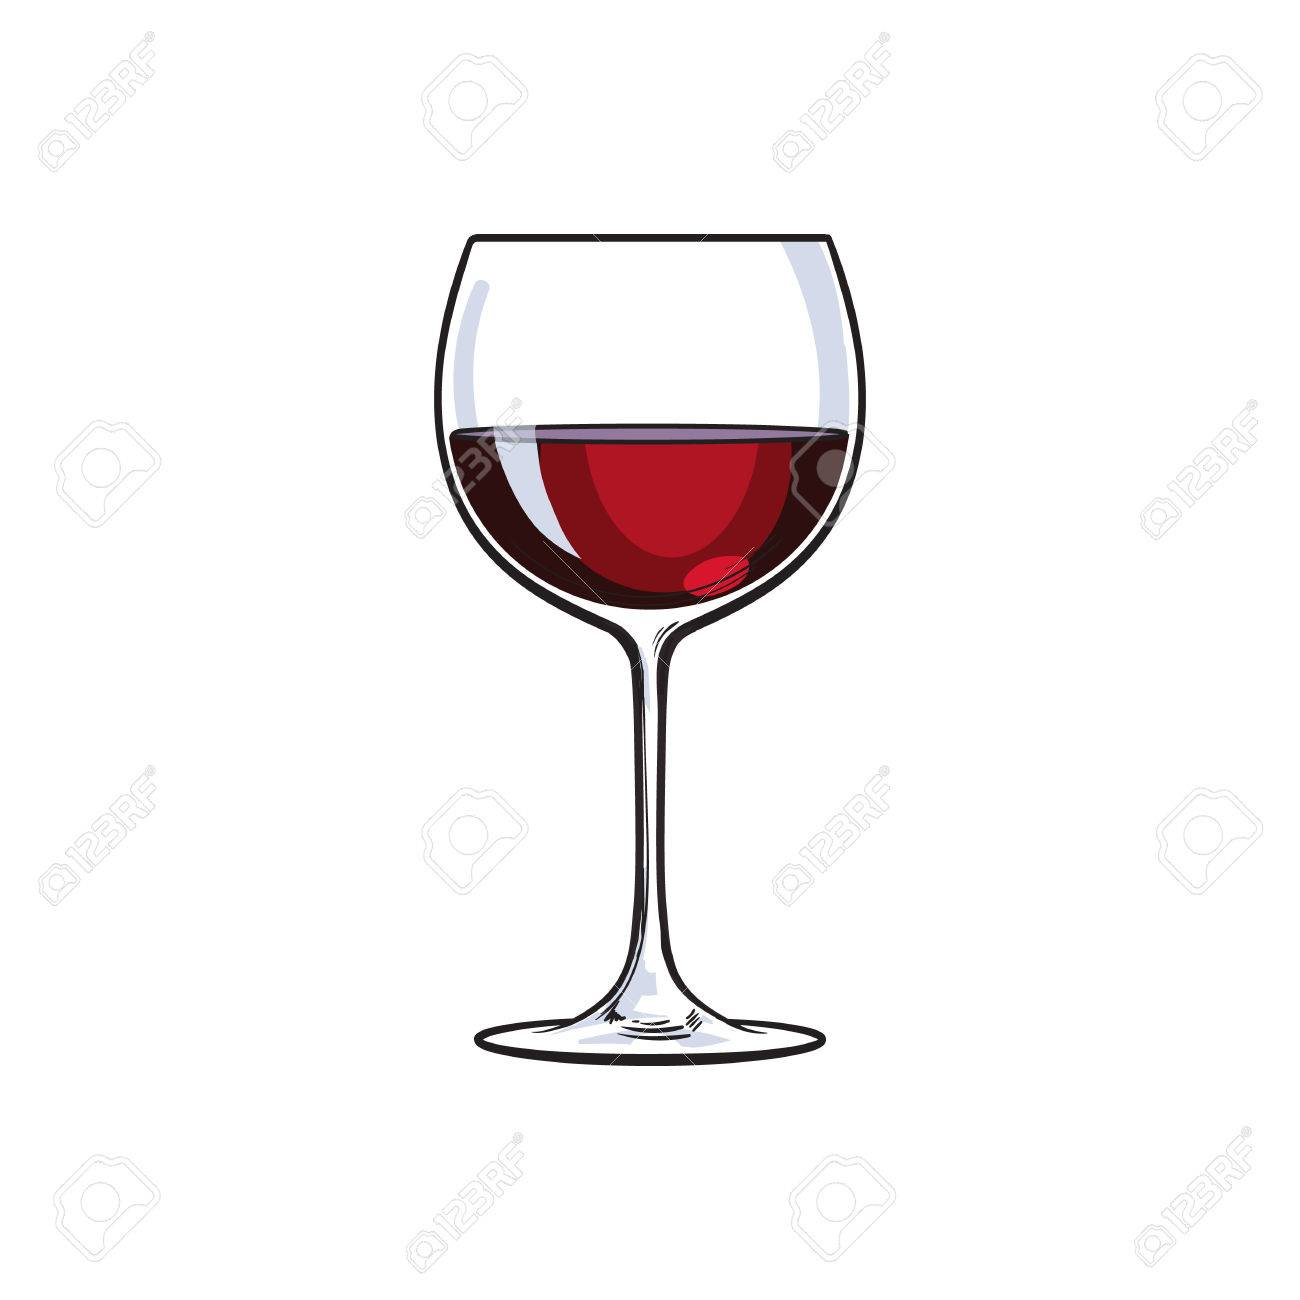 Red wine glass, sketch style vector illustration isolated on white background. Realistic hand drawing of a glass with red wine, symbol of celebration - 67895728